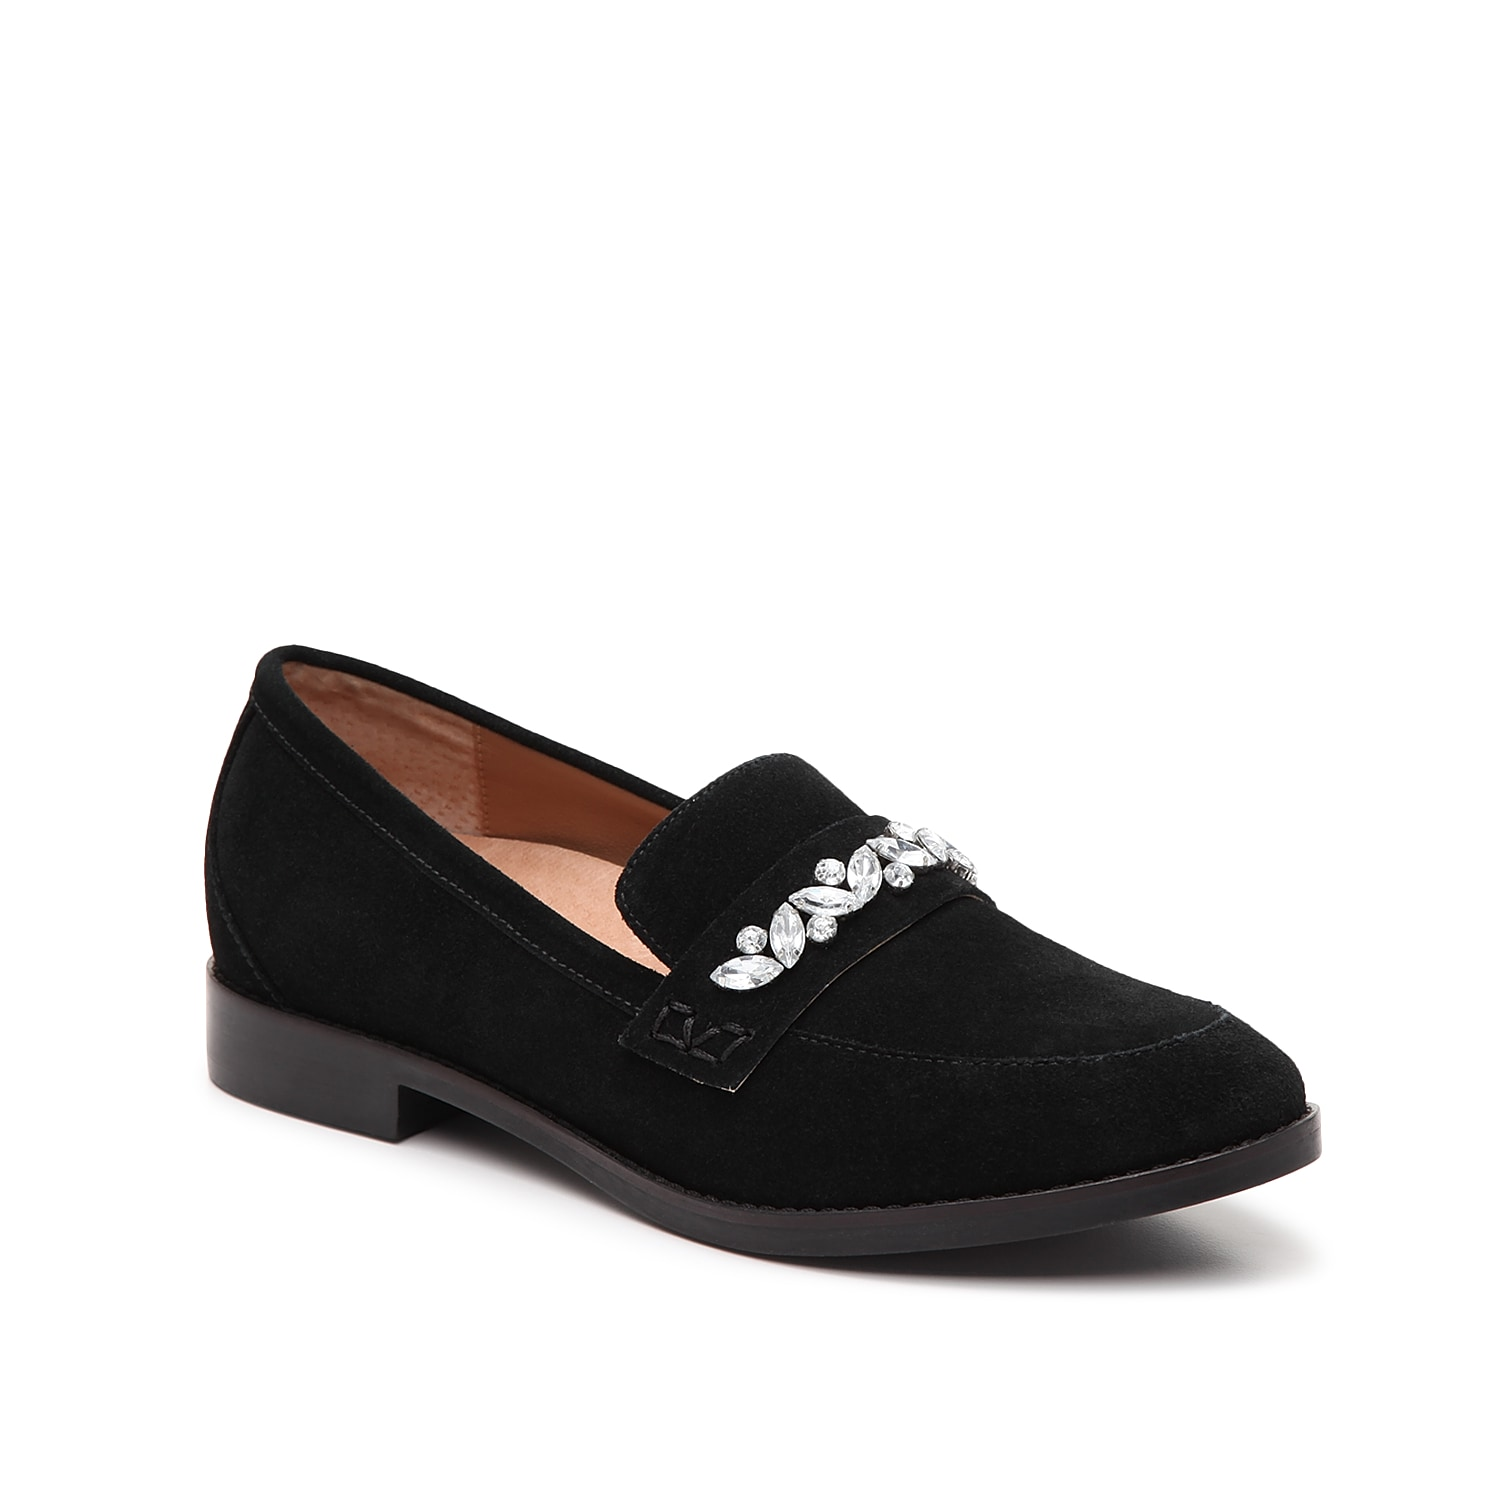 Bring sophisticated looks to your ensemble with the Avvy loafer from Vionic. This slip-on pair is fashioned with a suede upper and rhinestone embellishments for extra dazzle!